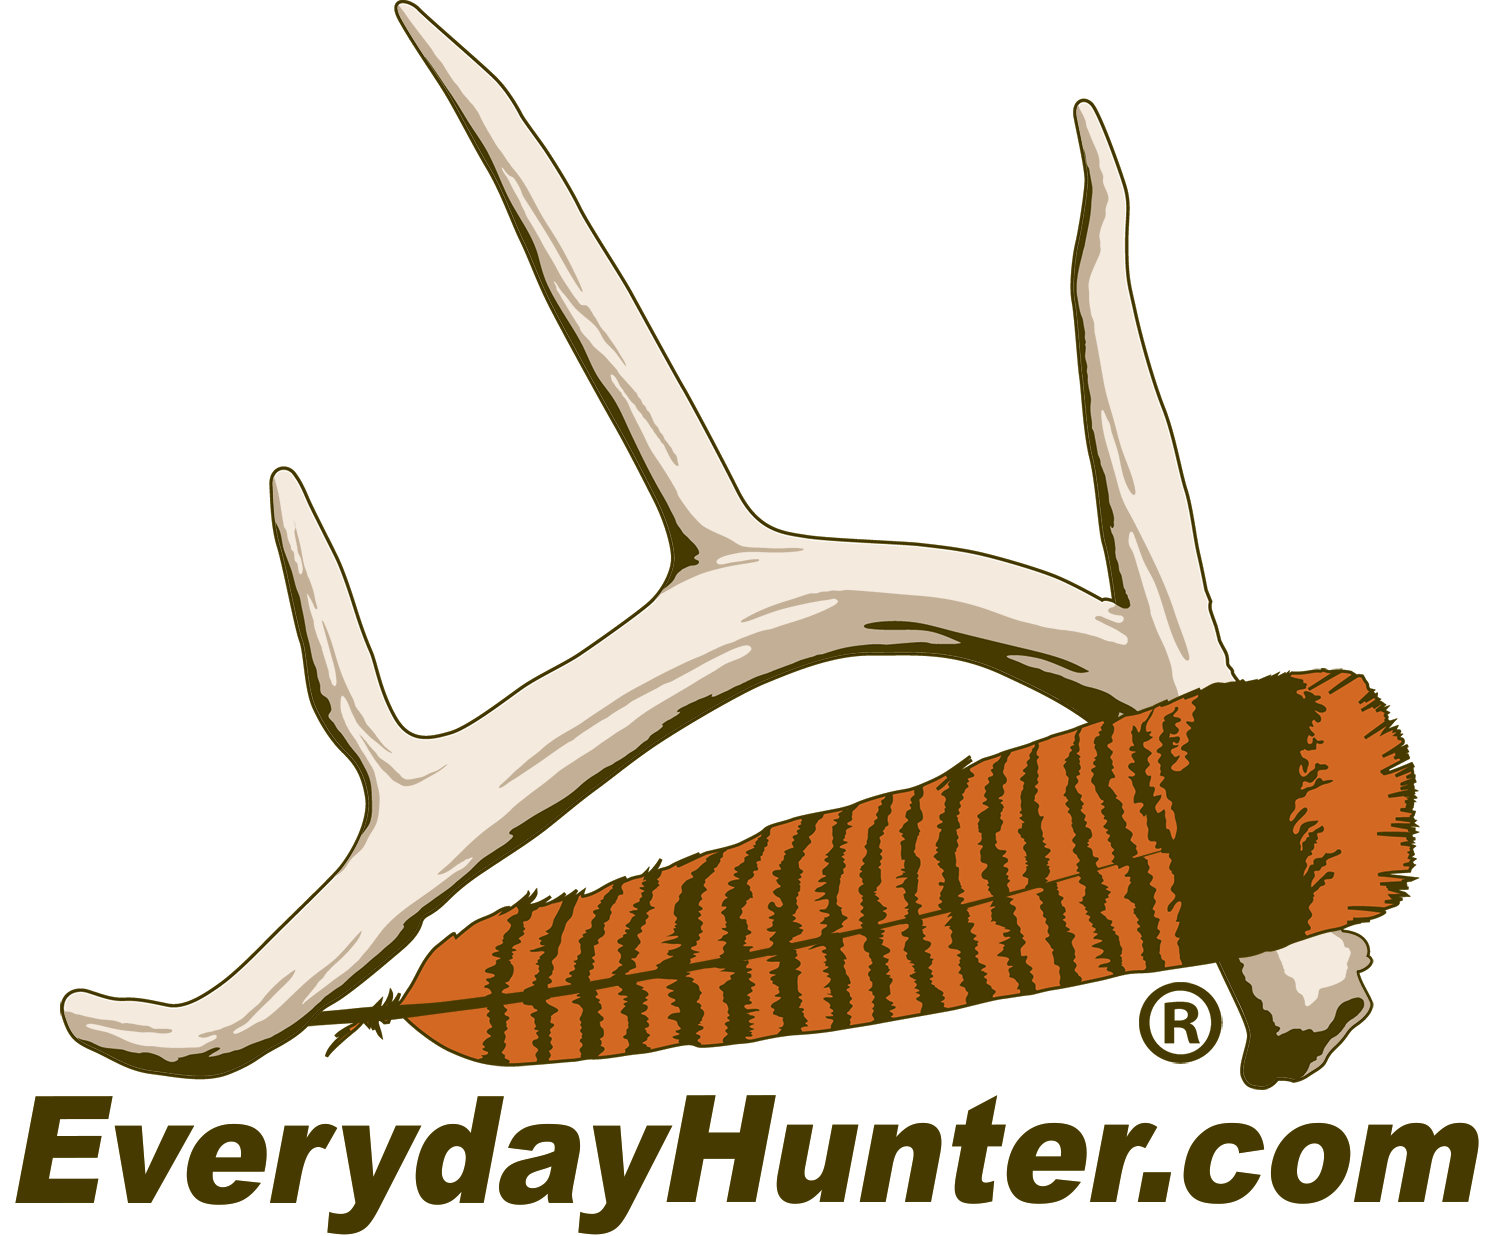 Evidence clipart nature hunt. The everyday hunter